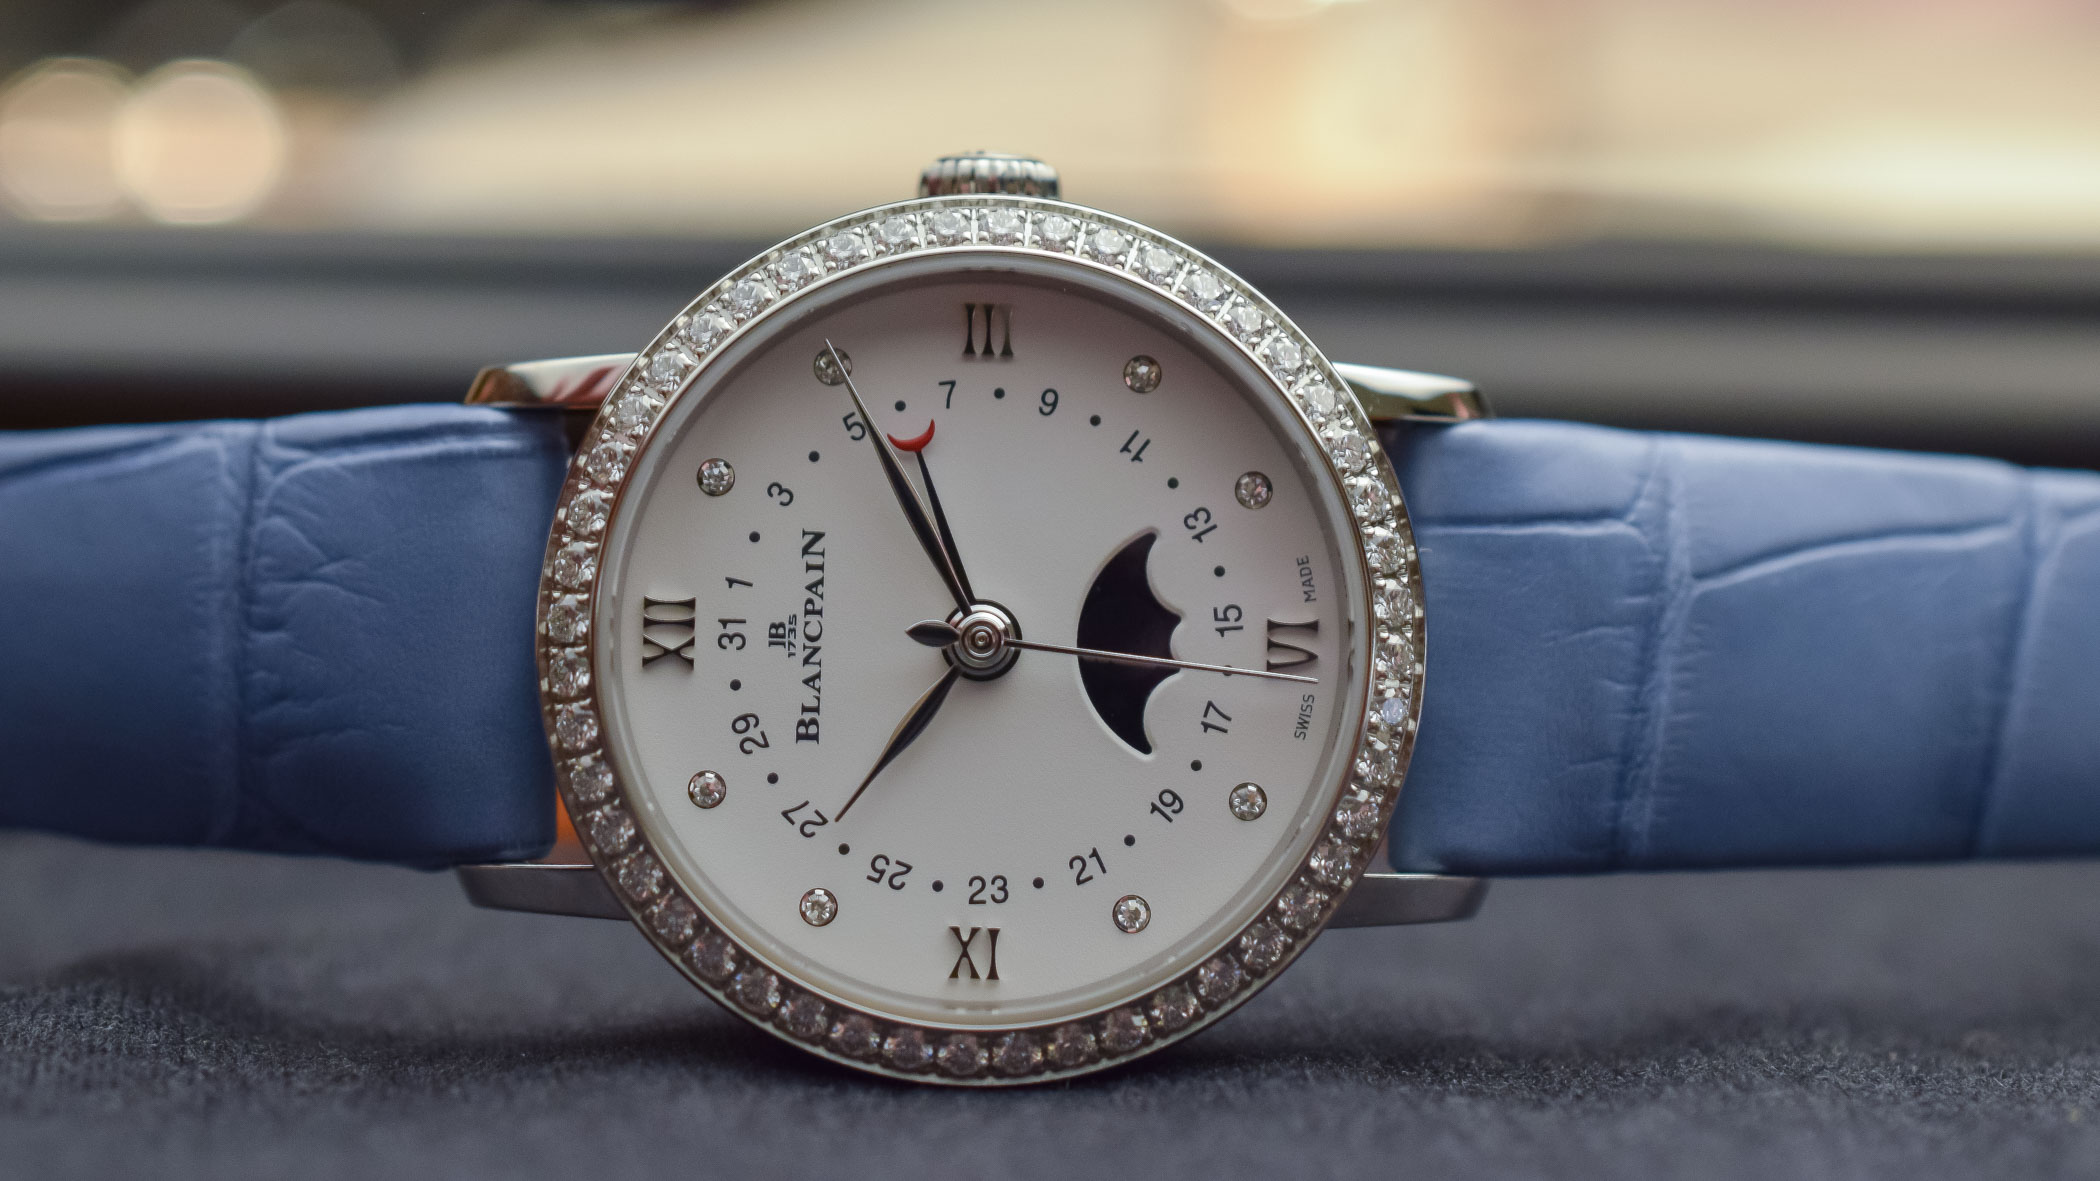 Blancpain Villeret Quantième Phases de Lune Ladies watch